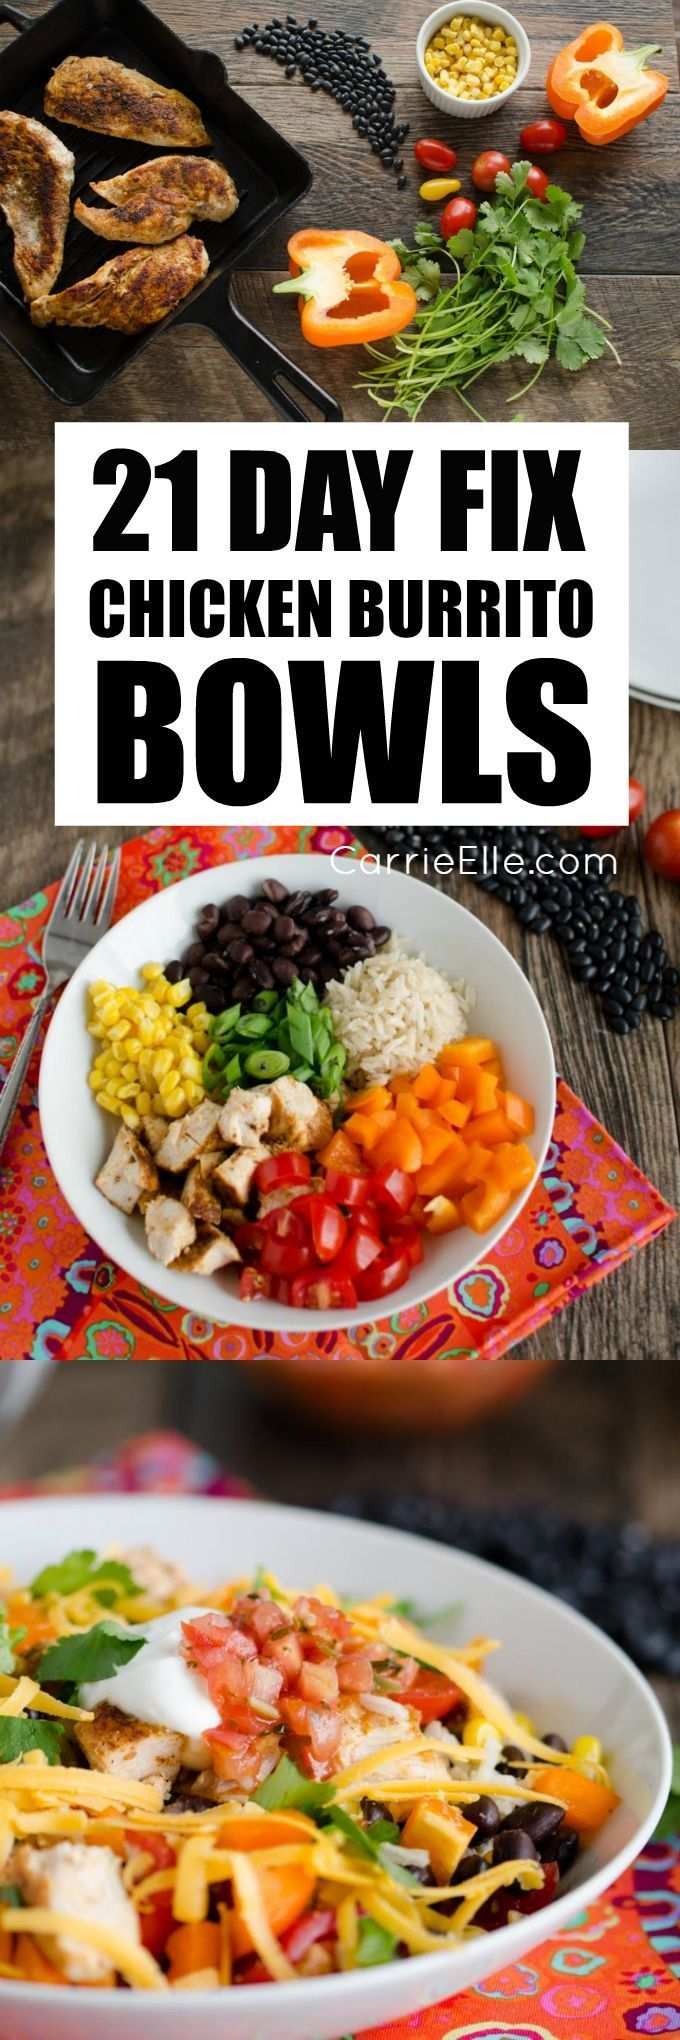 There are so many things to love about this recipe. These 21 Day Fix Chicken Burrito Bowls, which were created by my friend Chellie over at Art From My Table, a